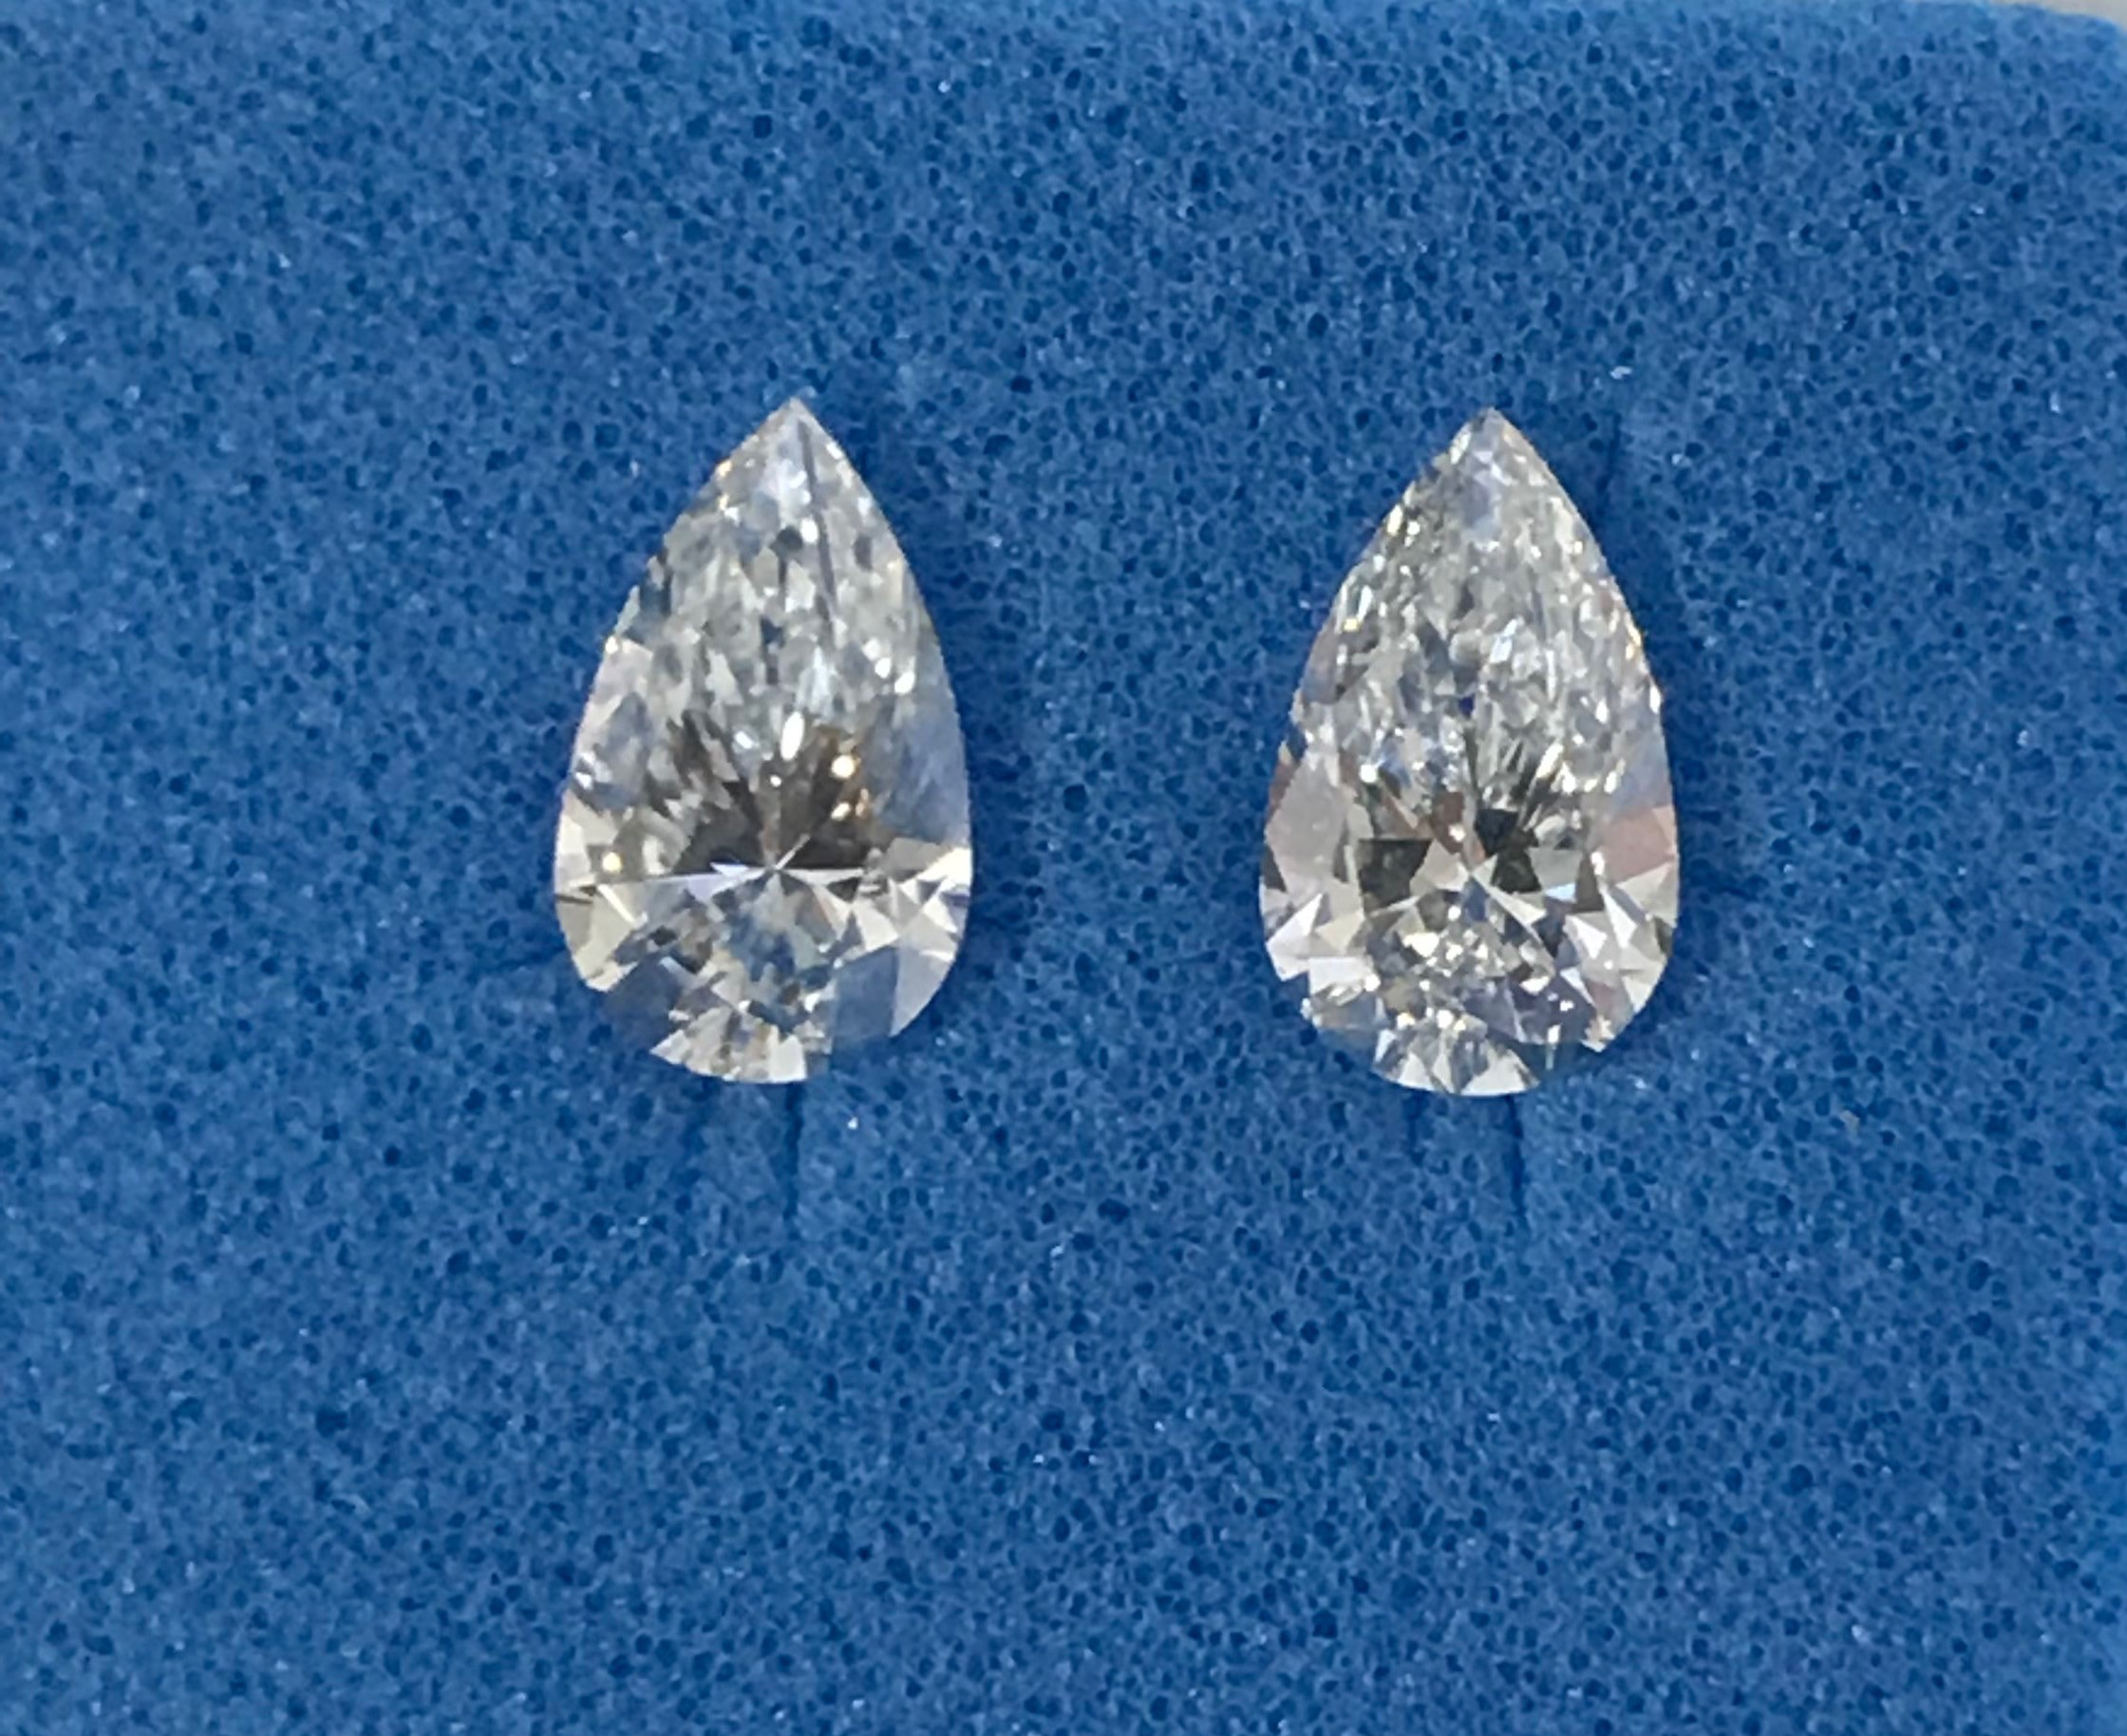 Gumer & Co Jewelry - Diamond Image - .00928